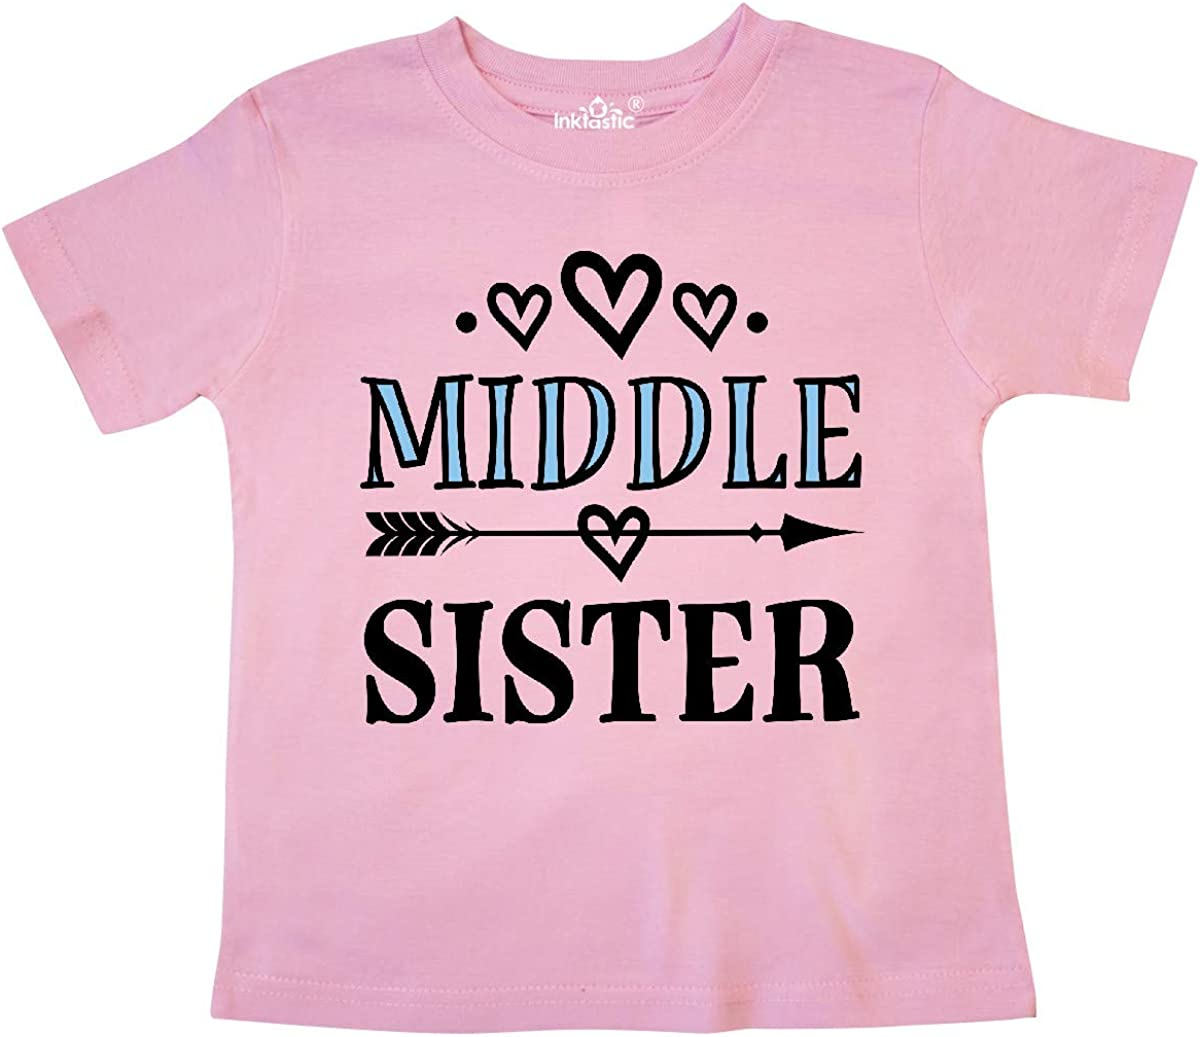 inktastic Middle Sister Gift for Girls Toddler T-Shirt